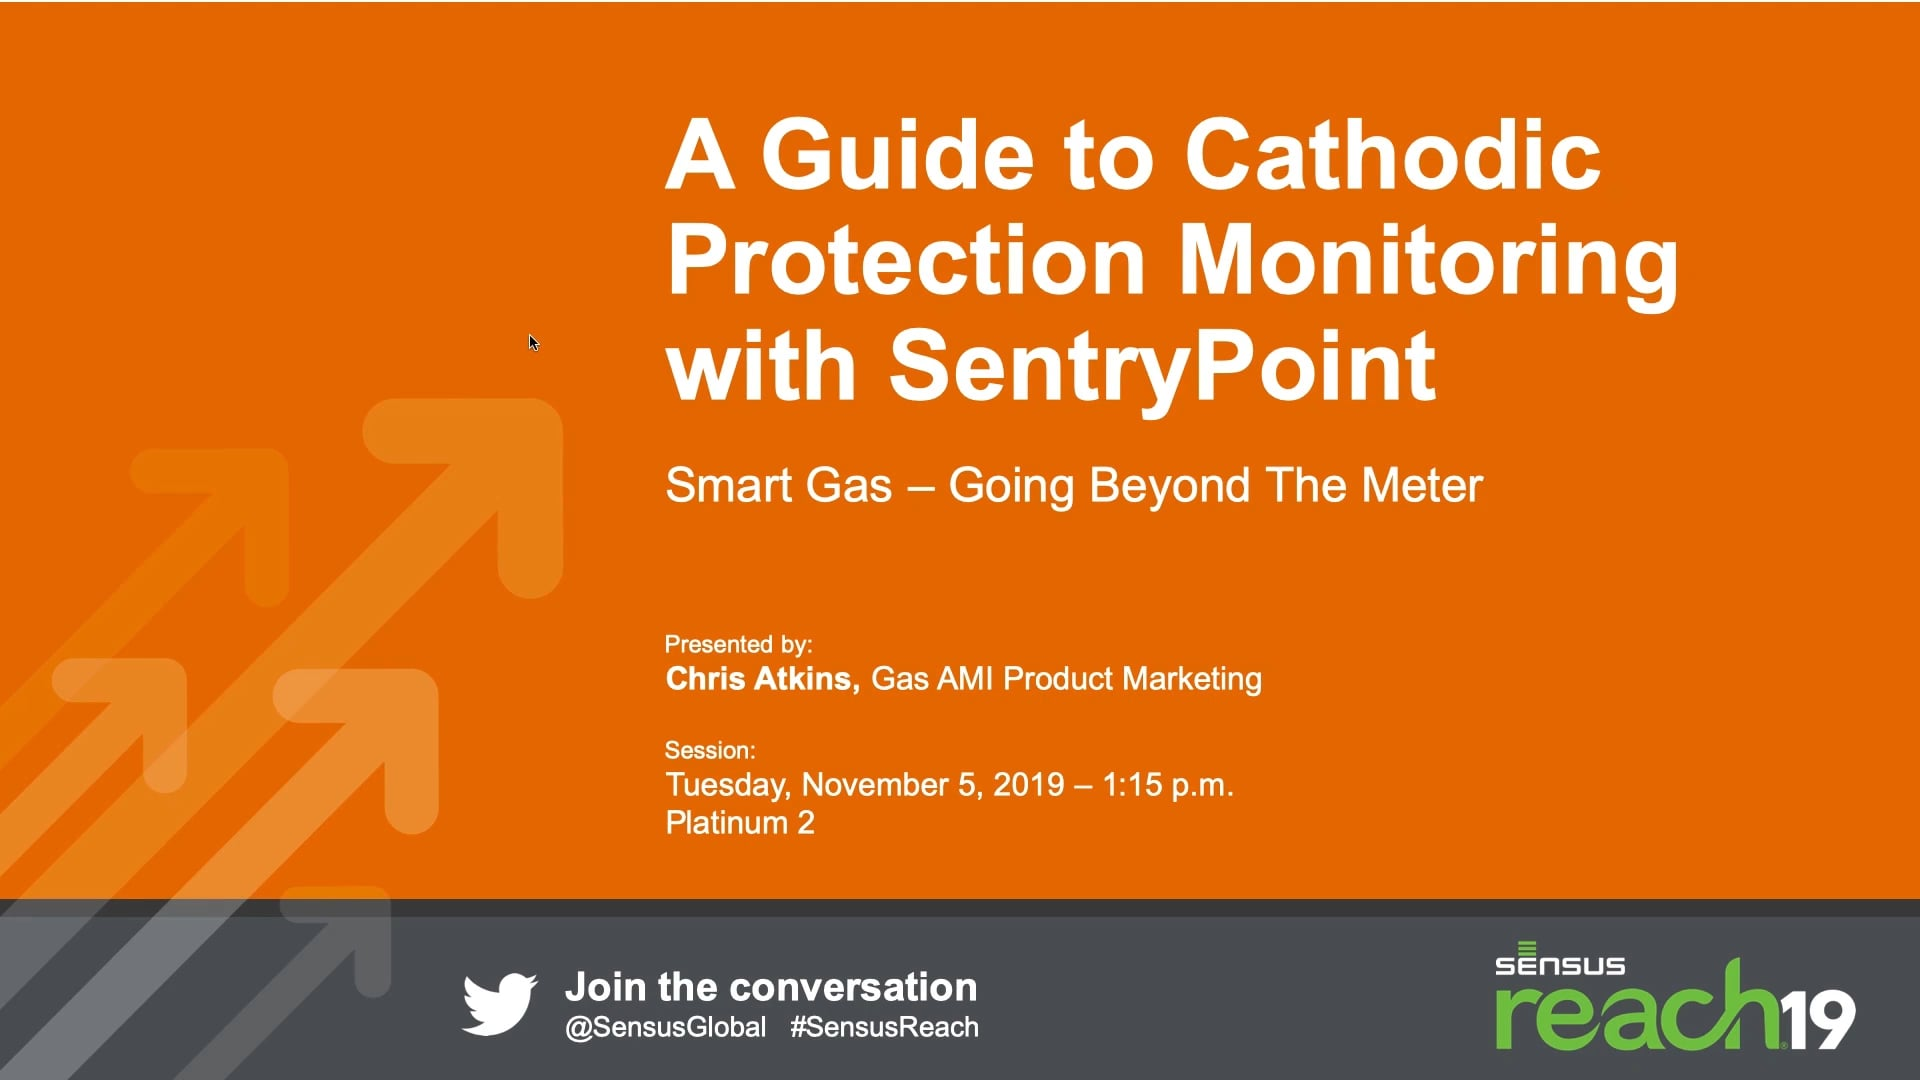 A Guide To Cathodic Protection Monitoring with SentryPoint